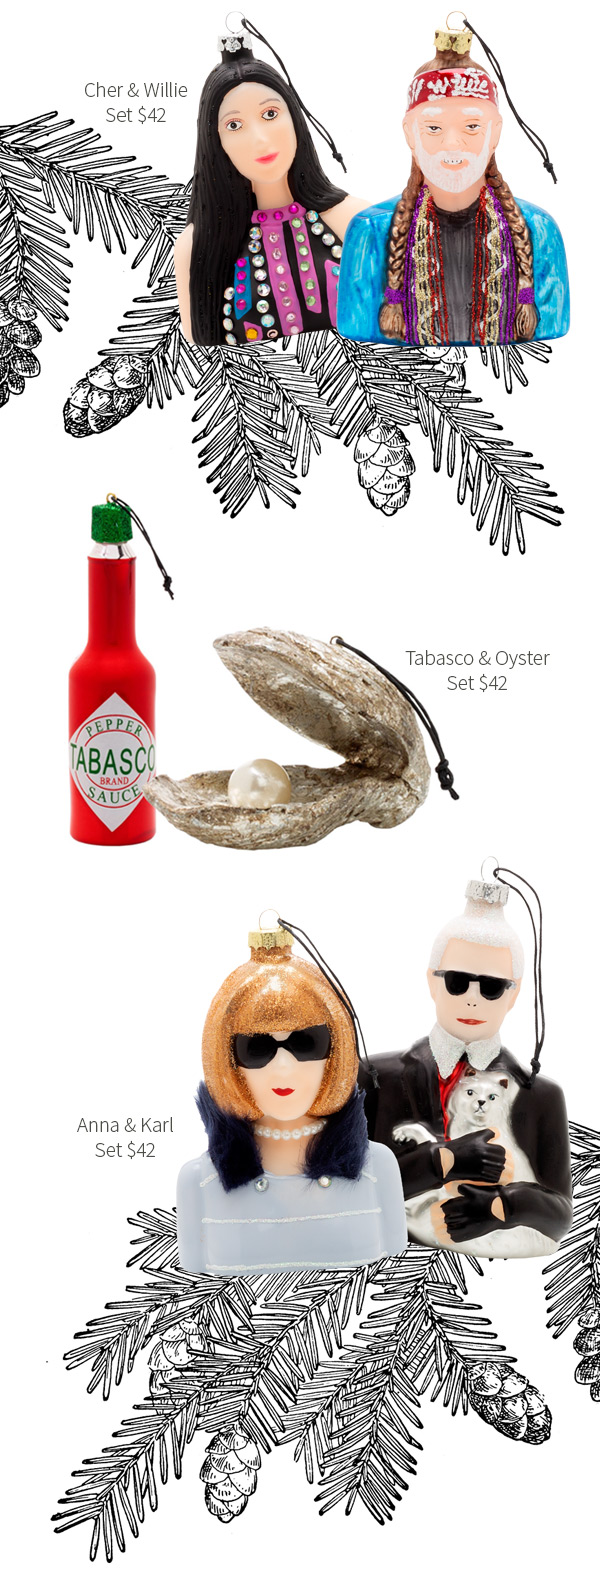 Hudson Grace Ornaments - Cher and Willie Set $42 .?Tabasco and Oyster Set $42 .?Anna and Karl Set $42